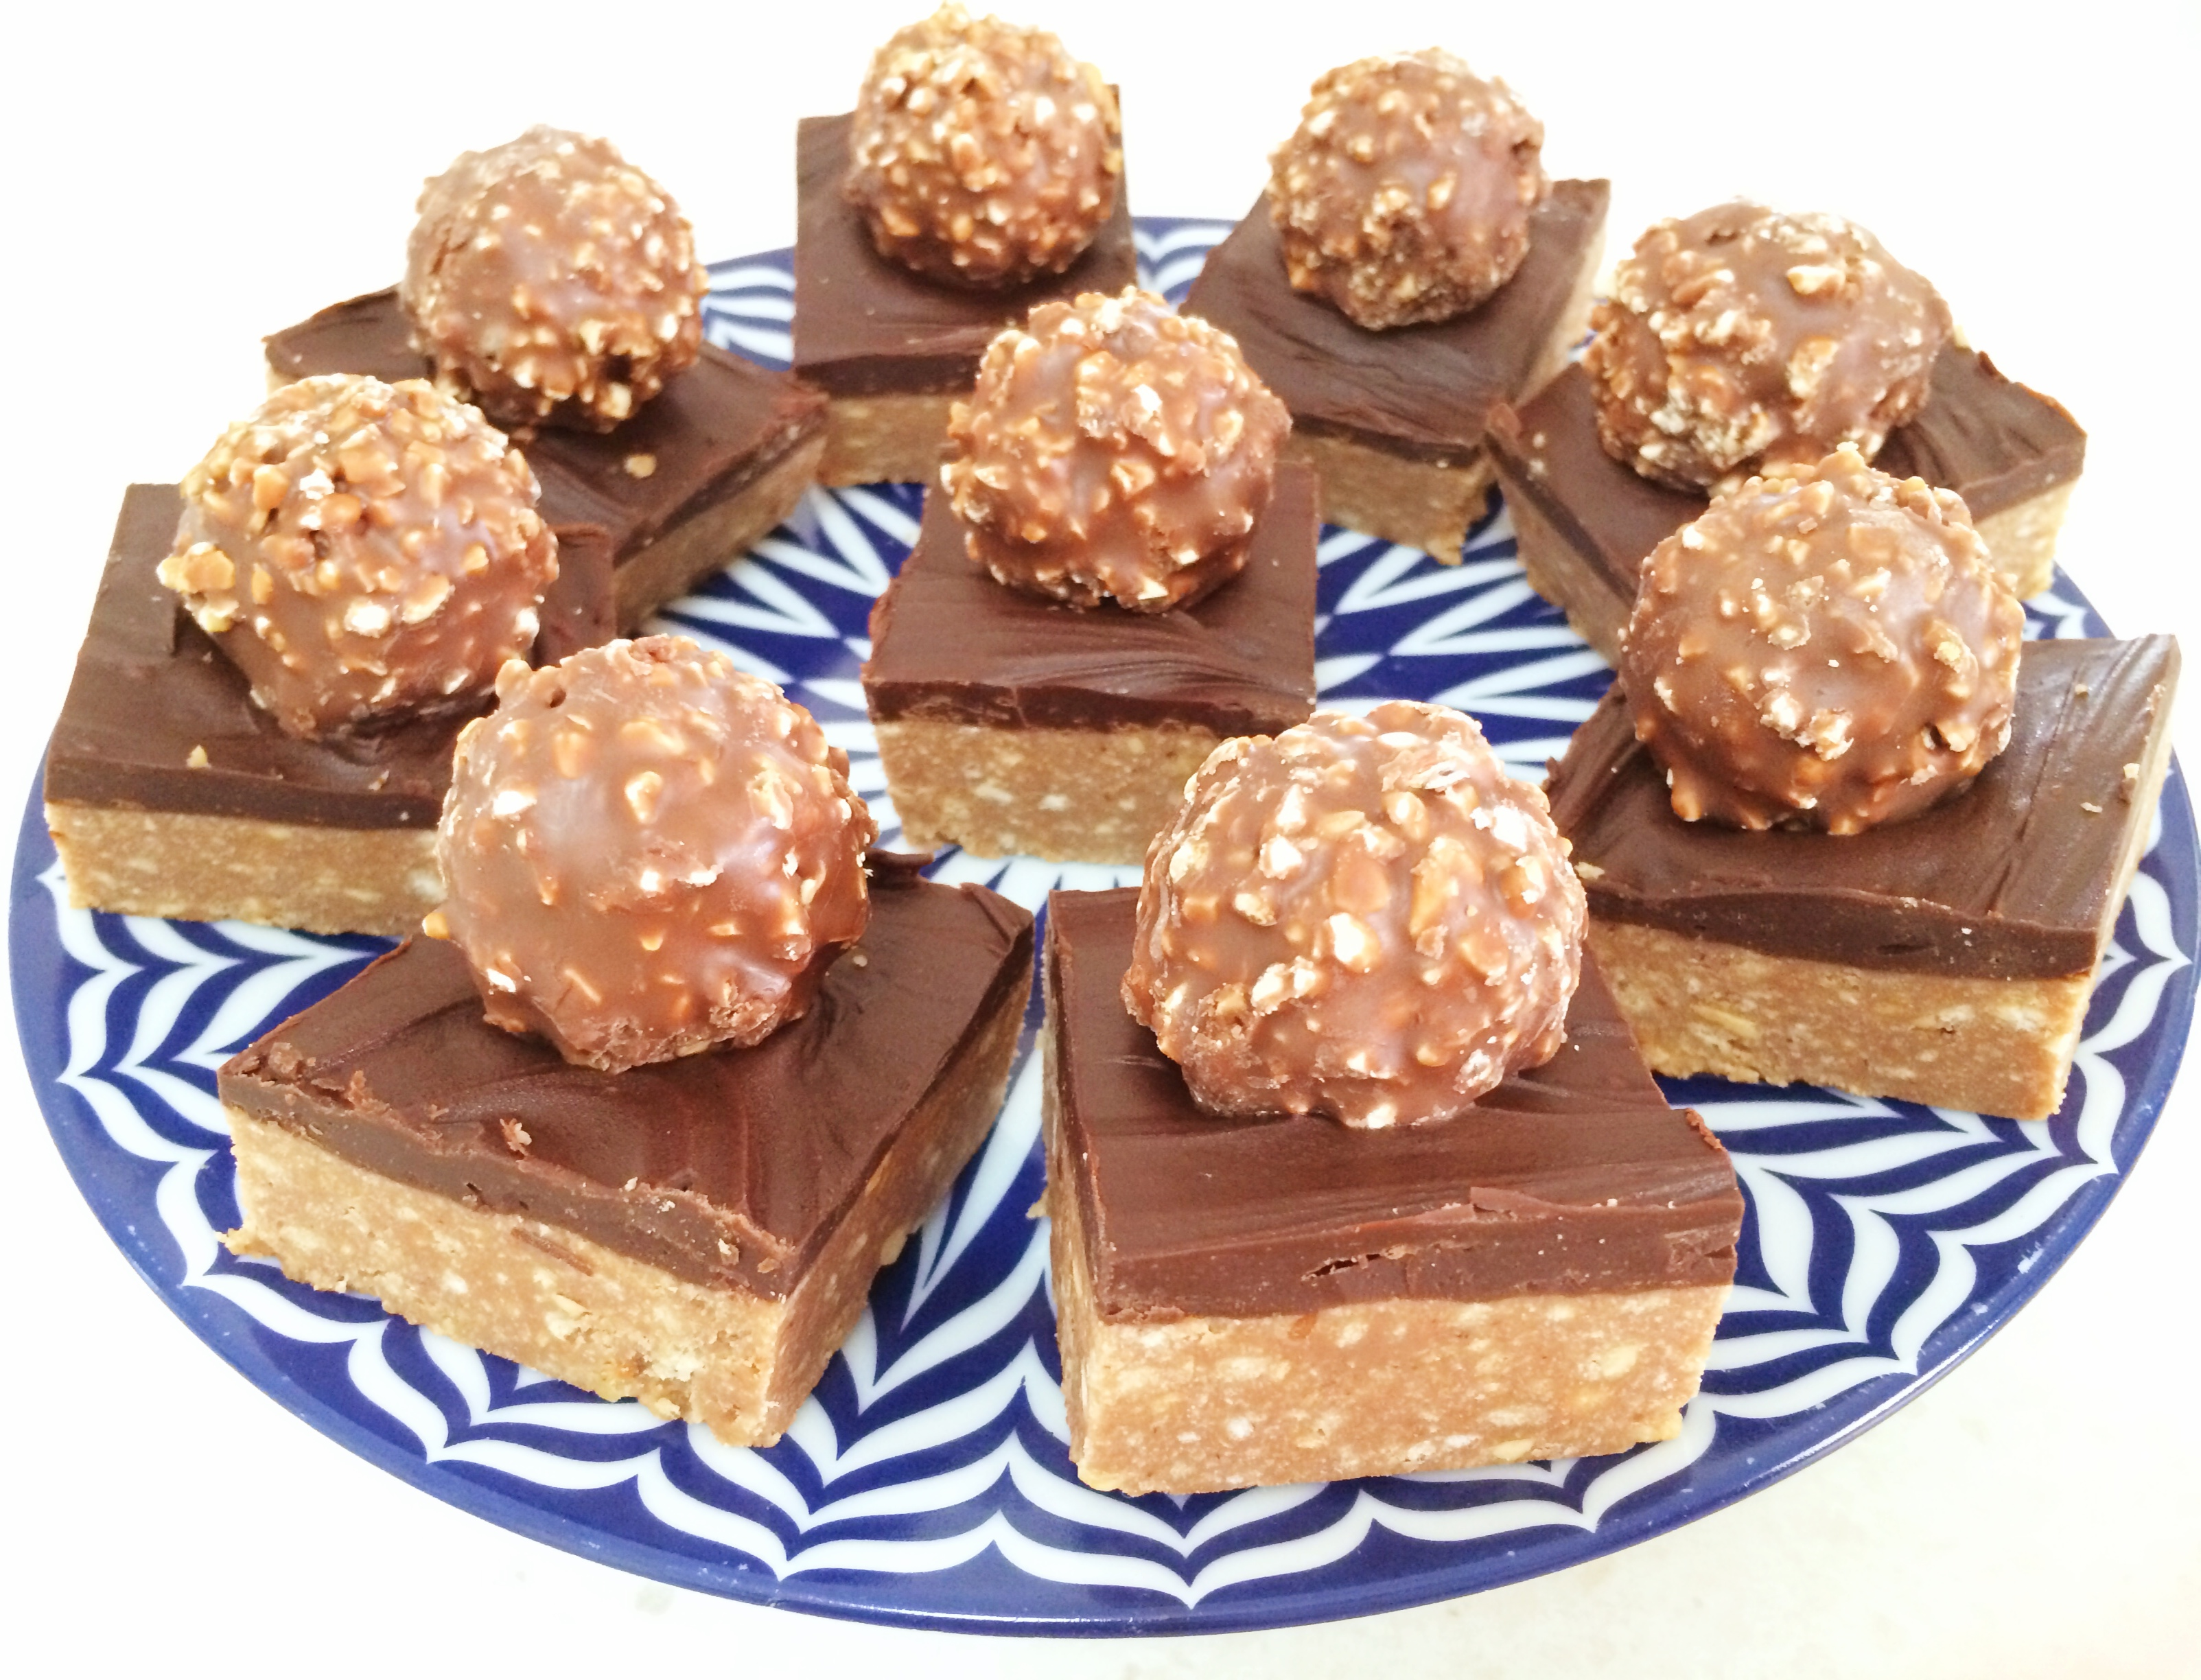 Ferrero Rocher Chocolate Hazelnut Slice - Bake Play Smile